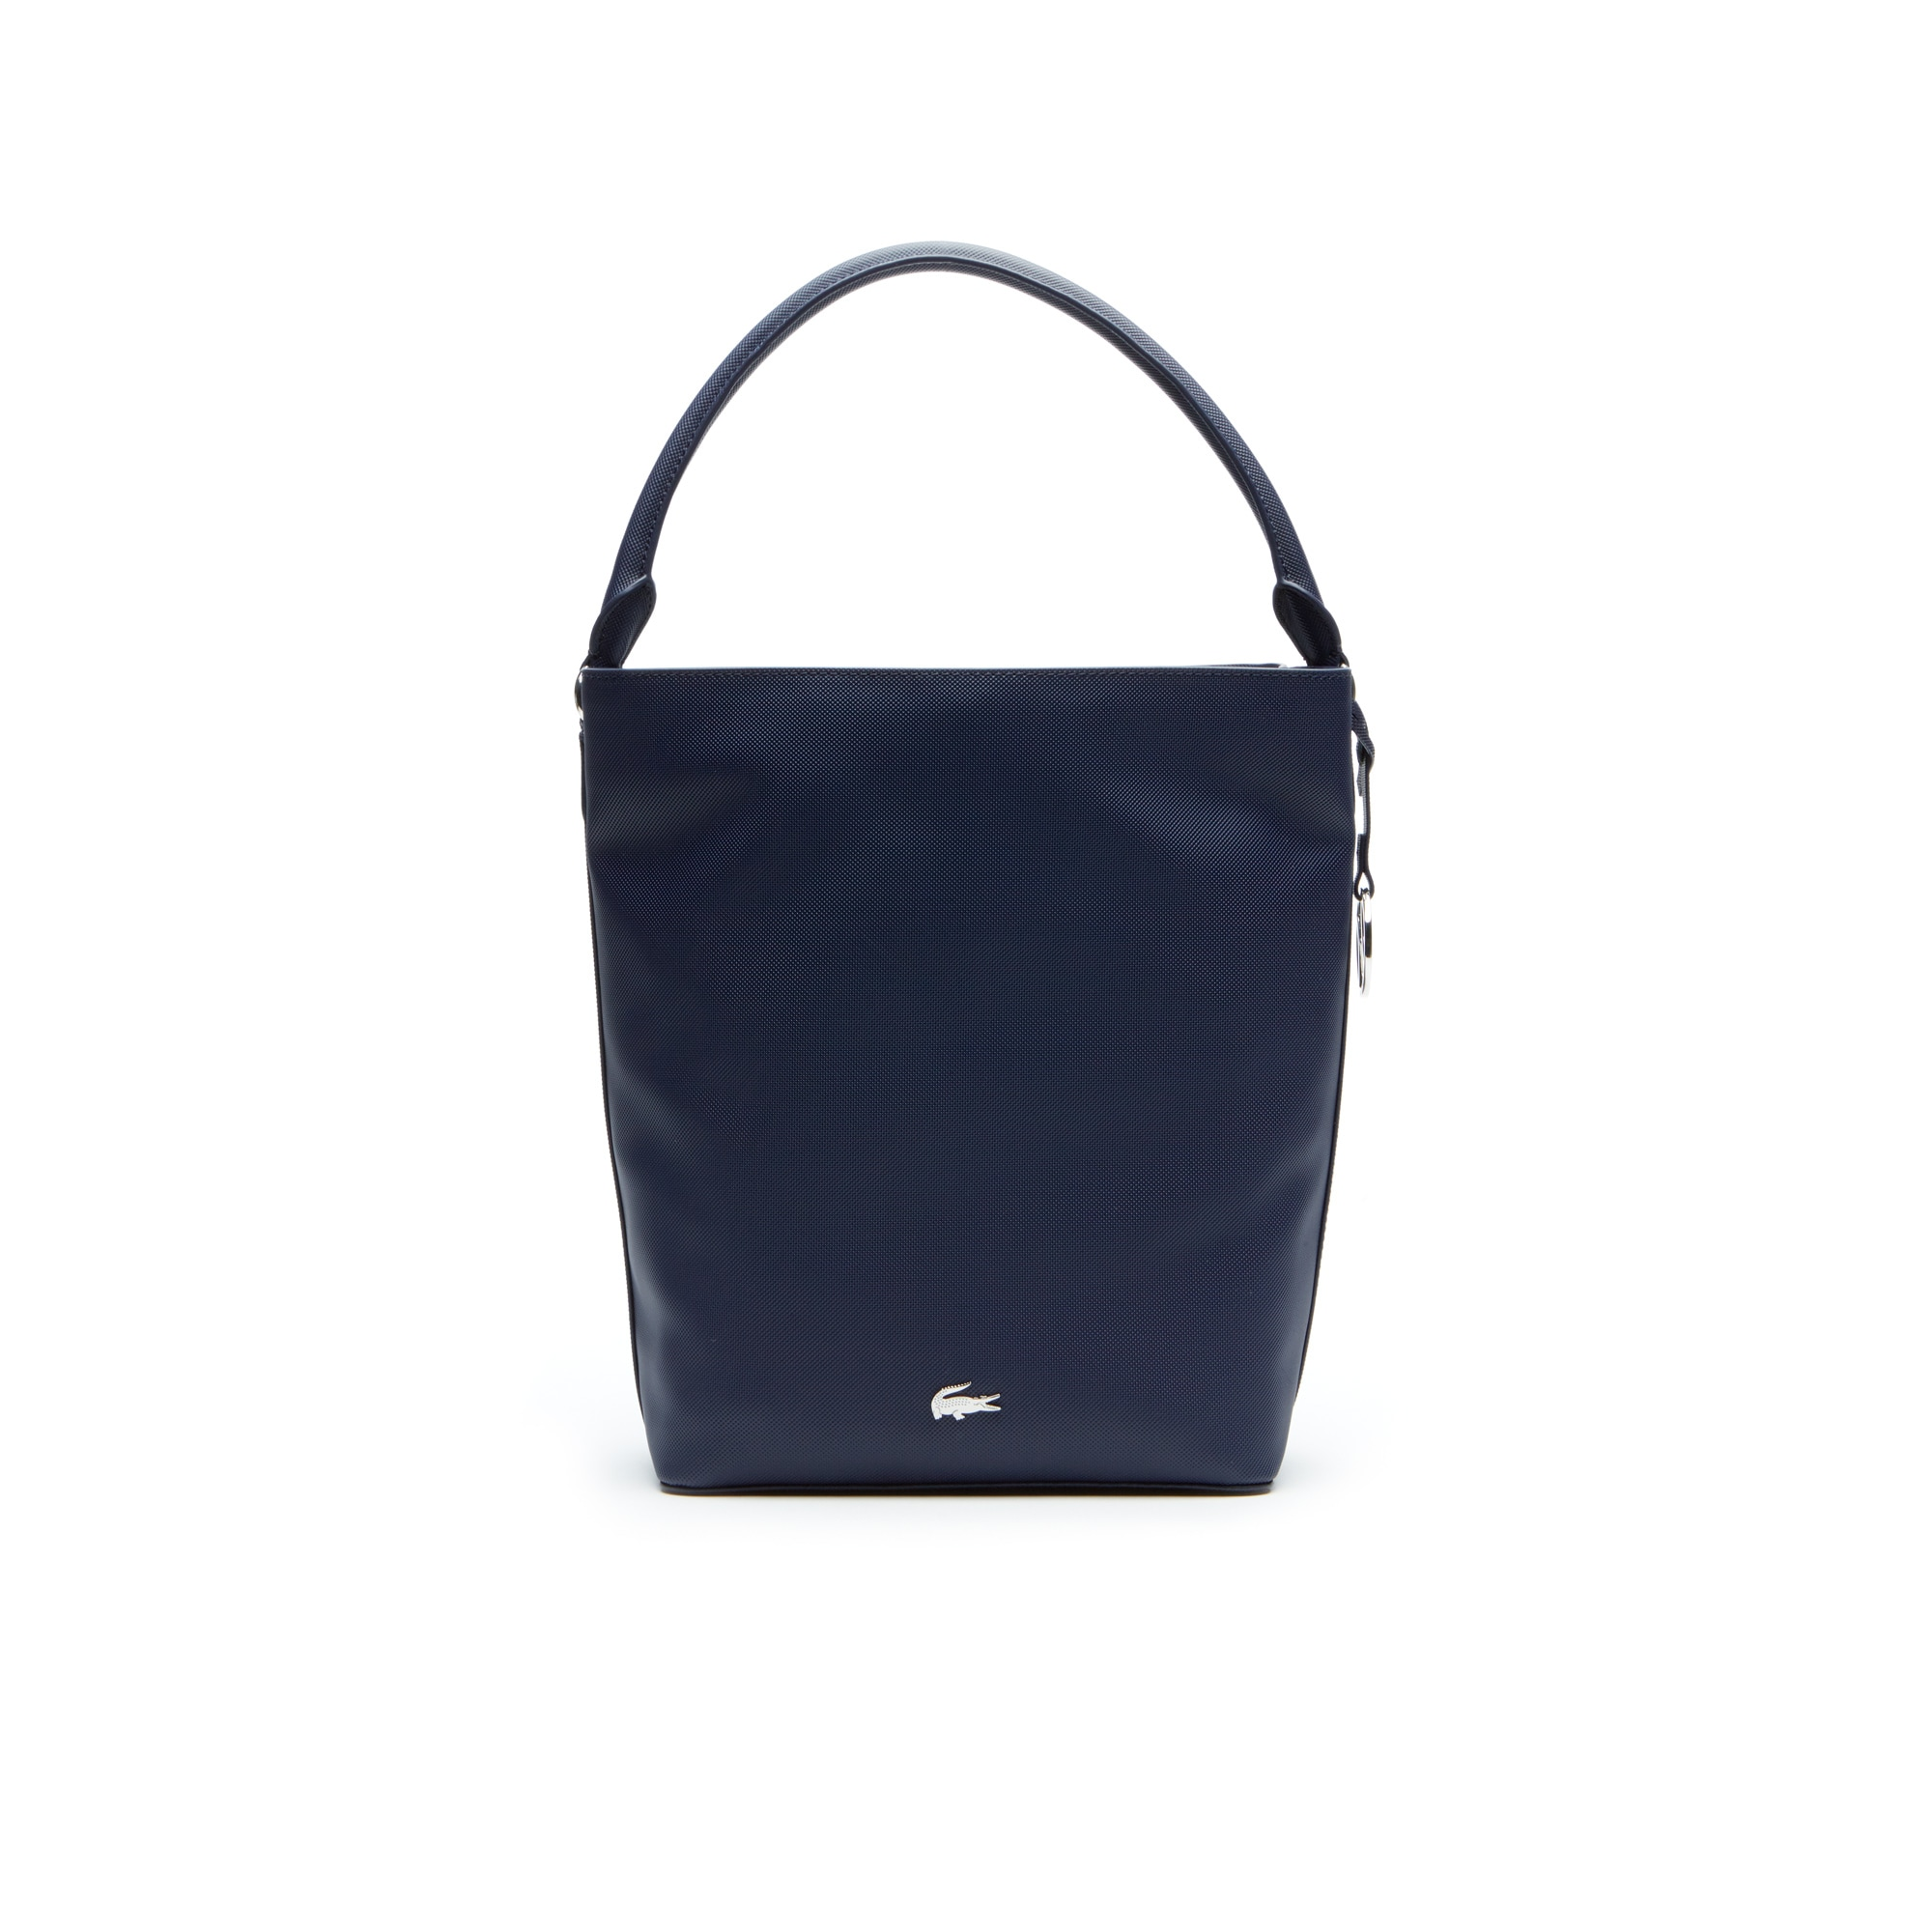 Women's Daily Classic Coated Piqué Canvas Hobo Bag